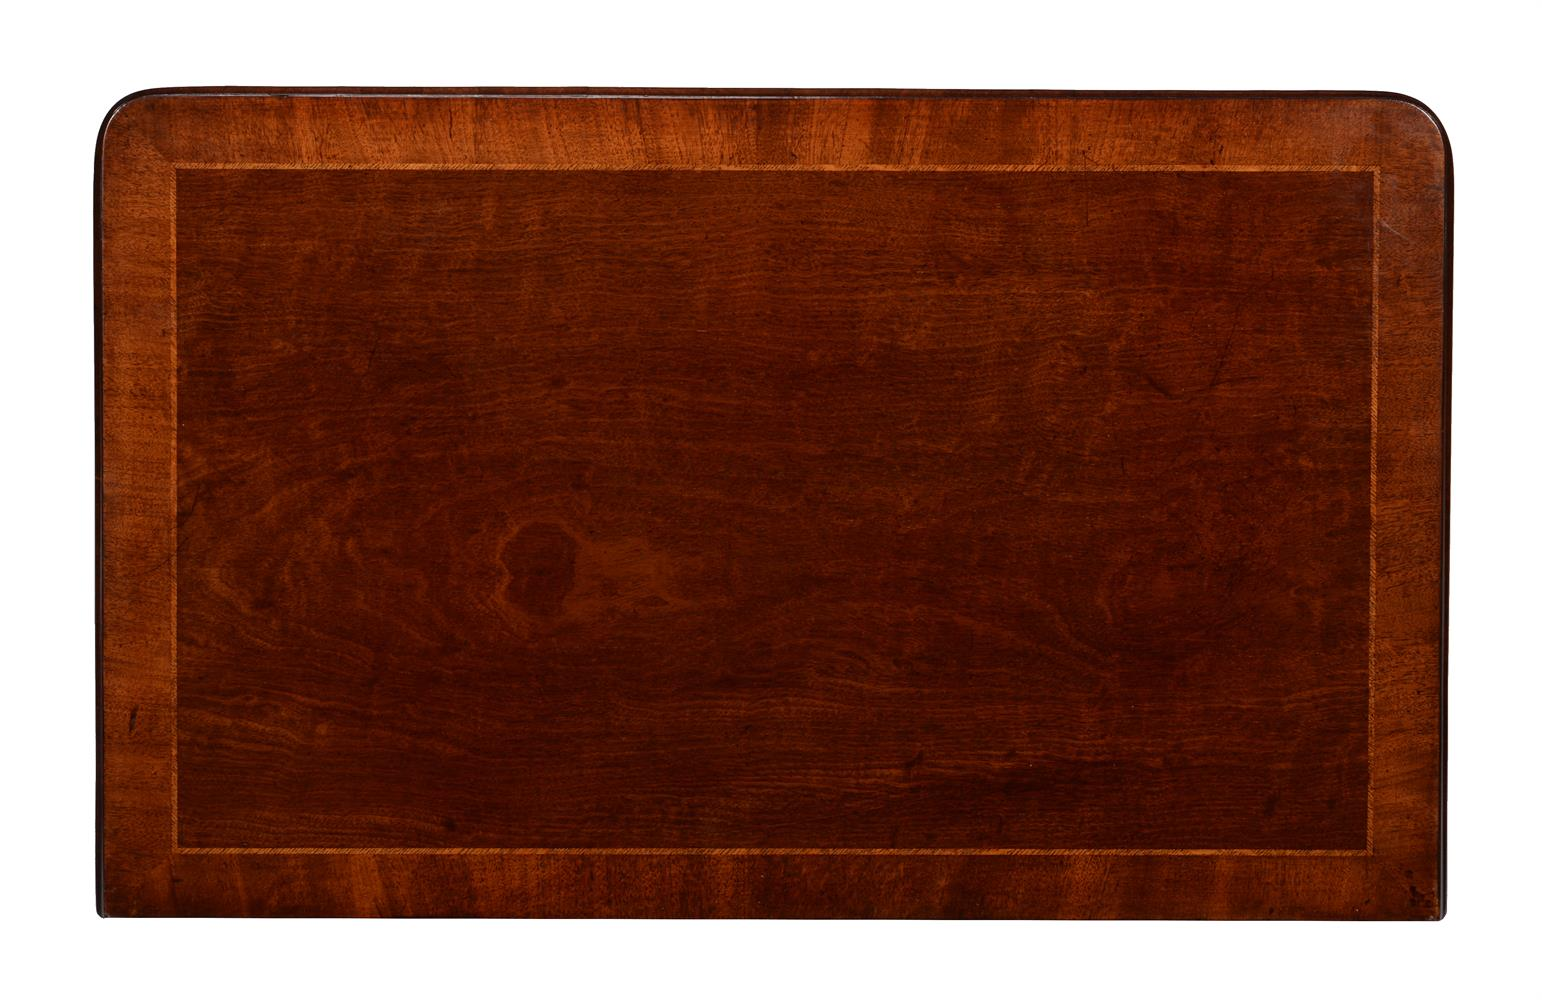 A GEORGE II MAHOGANY AND ASH BANDED SIDE TABLE OR LOWBOY, CIRCA 1750 - Image 2 of 4